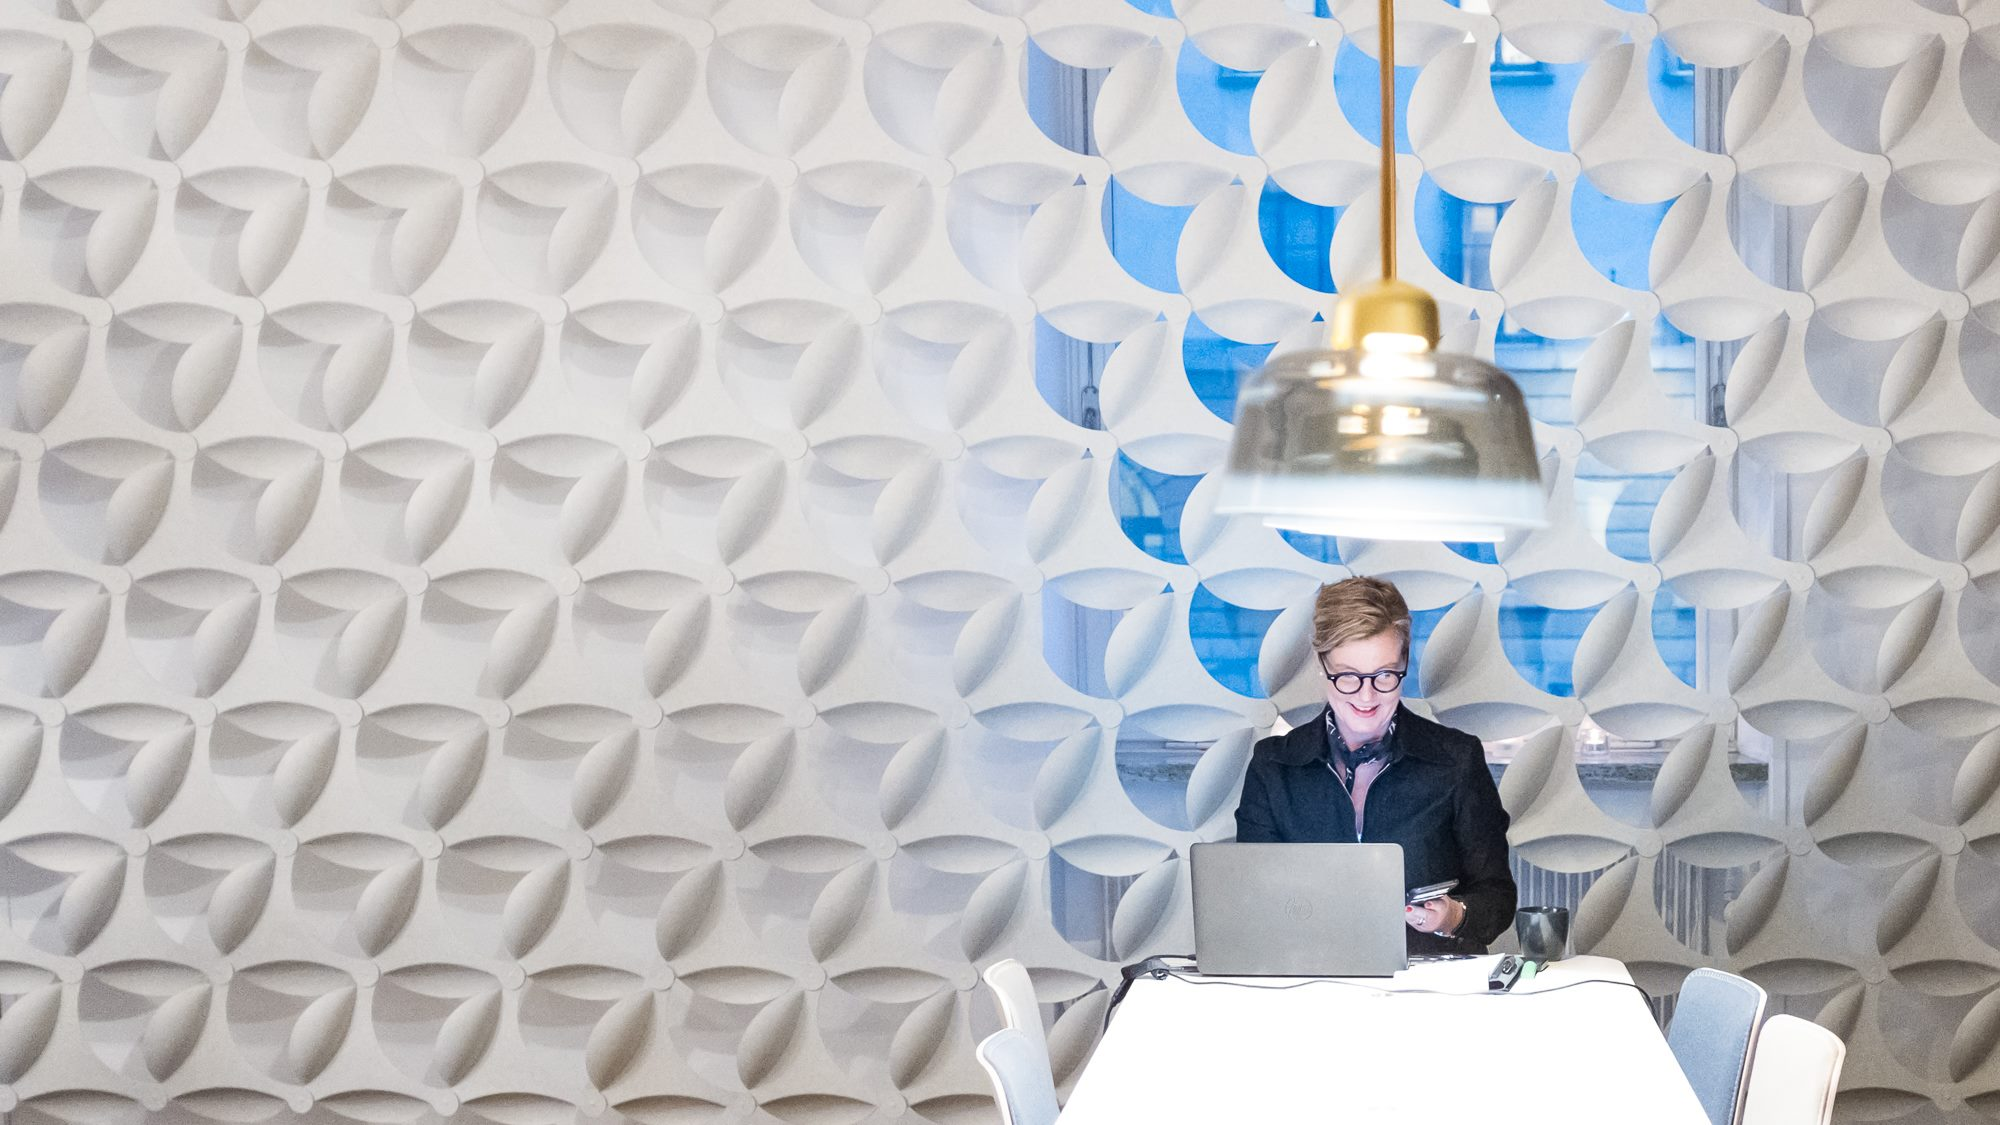 offecct acoustic panels - www.offecct.comoffers a wide range of sound absorbing solutions designed by renowned designers. Soundwave® is a well-known collection that apart from its acoustic properties also brings character to the interior.